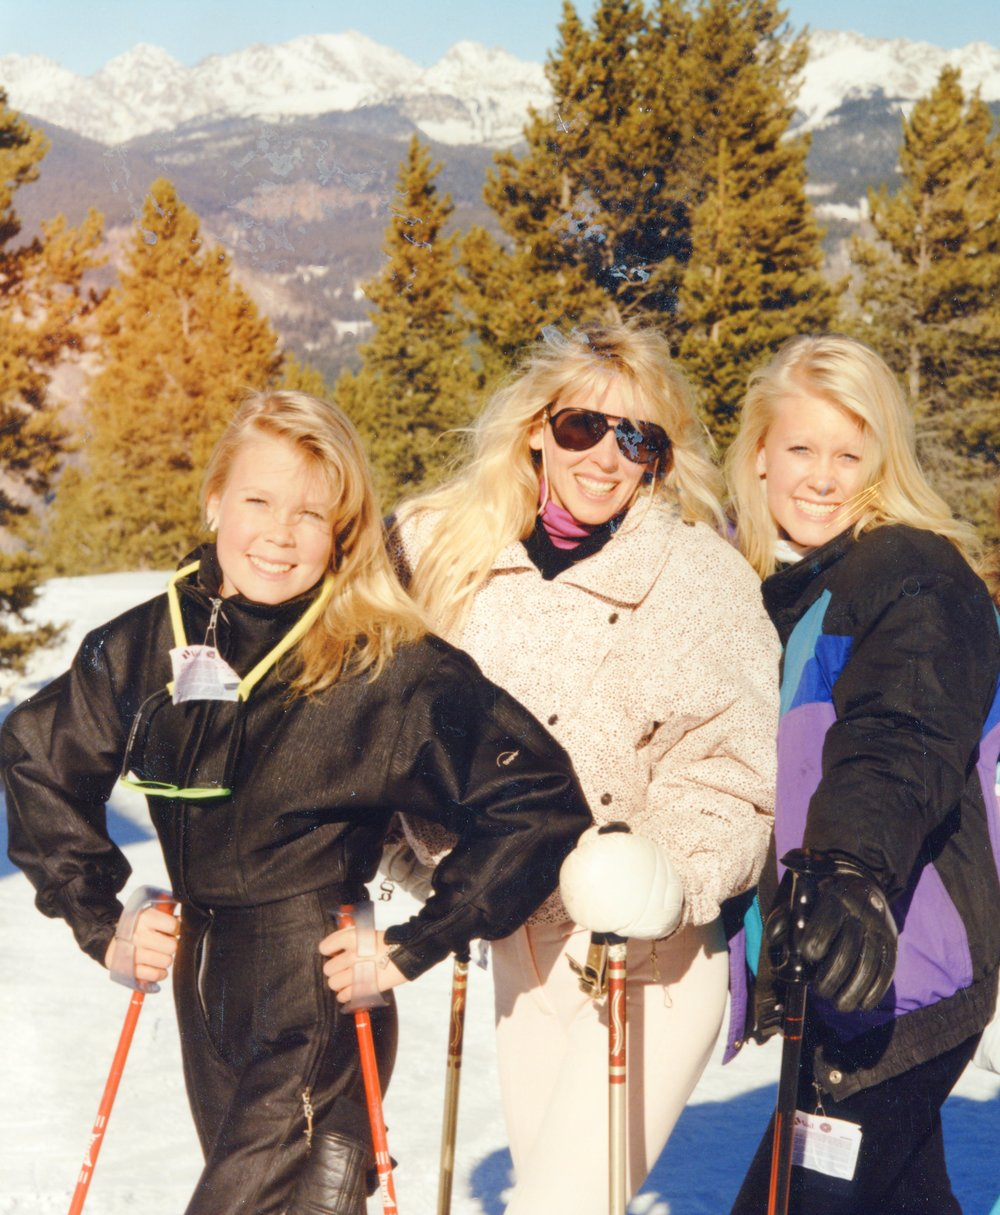 Vail, CO 1990. I'm on the right.